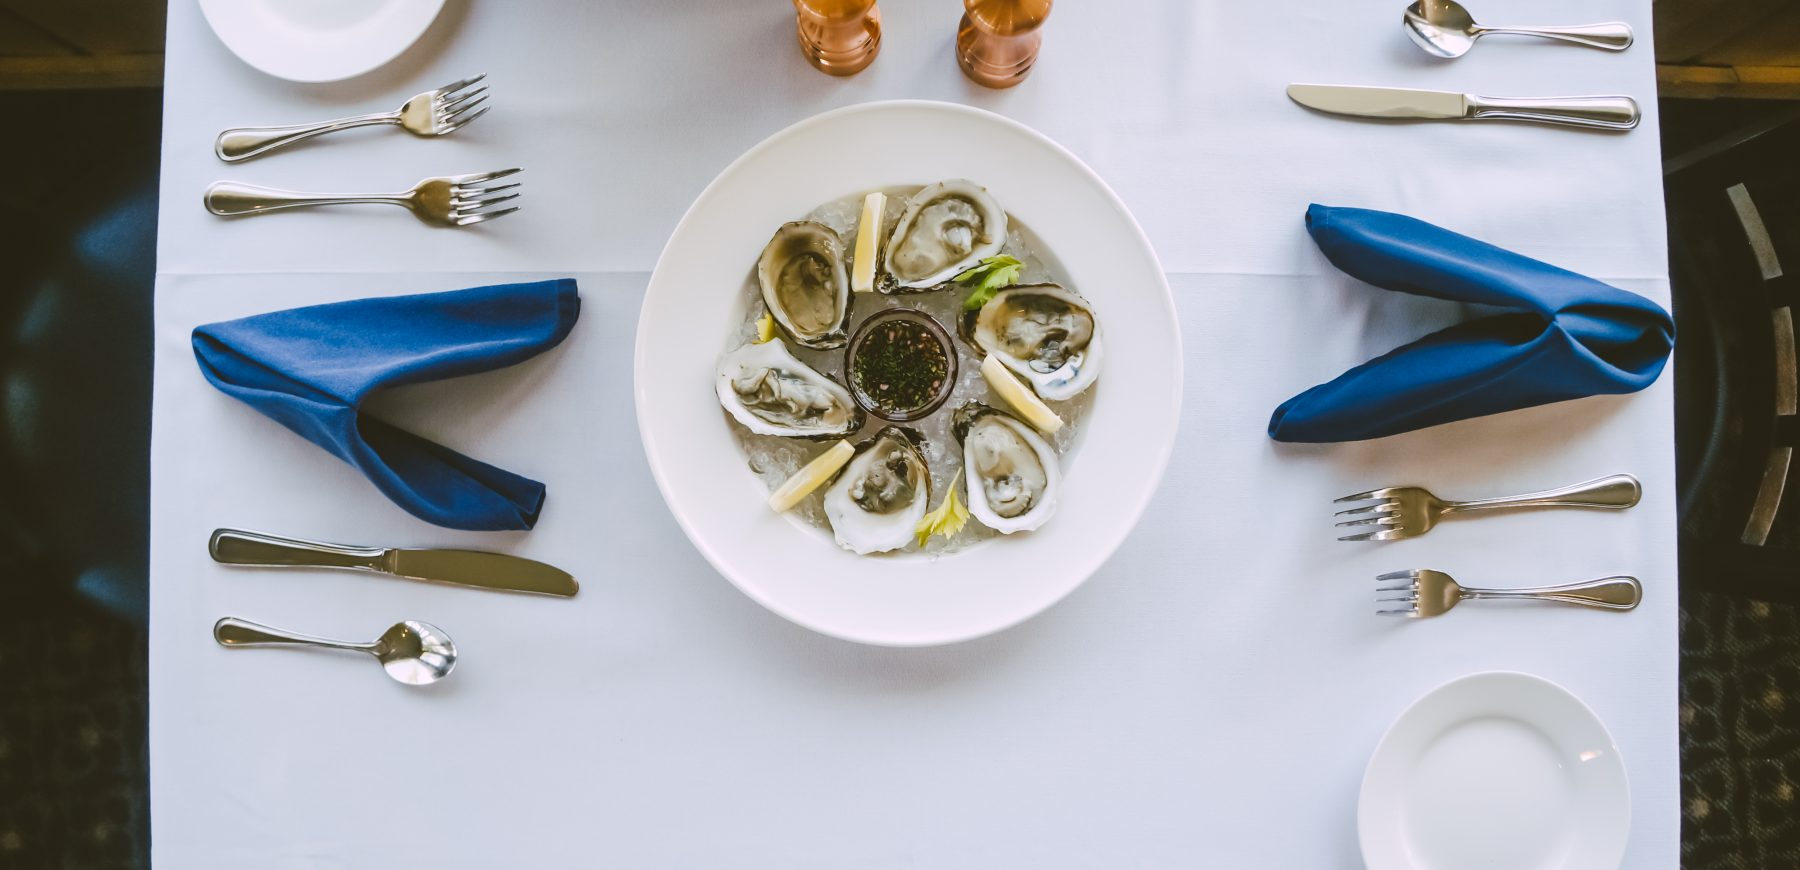 plate of oysters on a table at a restaurant with two place settings